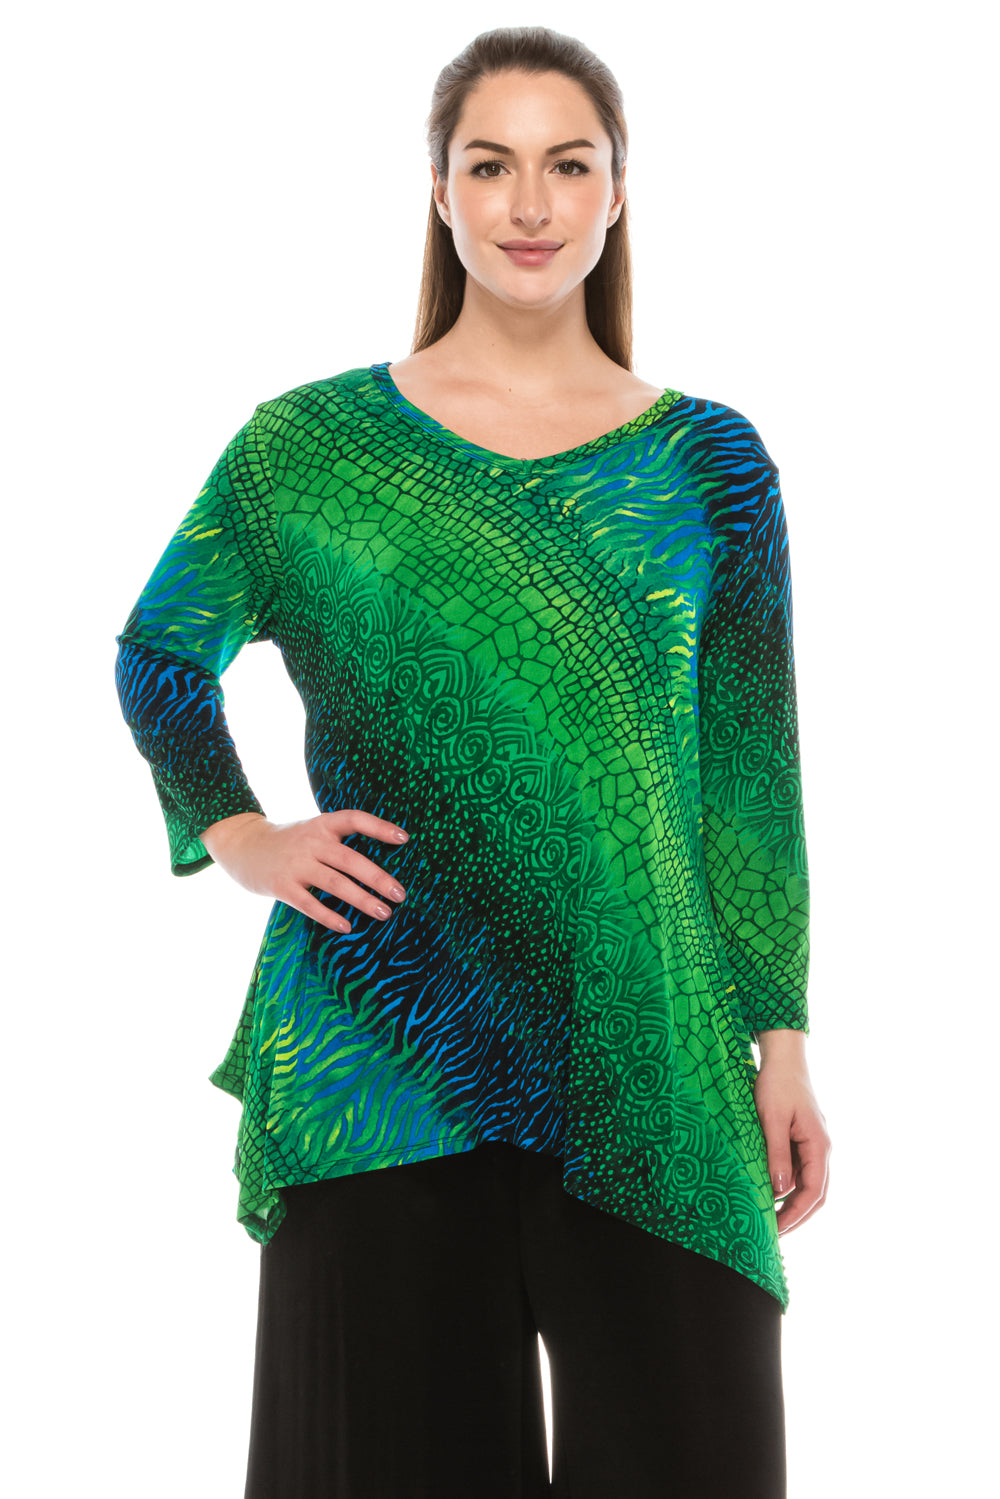 Jostar Women's Stretchy V-Neck Binding Top 3/4 Sleeve Print, 313BN-QP-W182 - Jostar Online